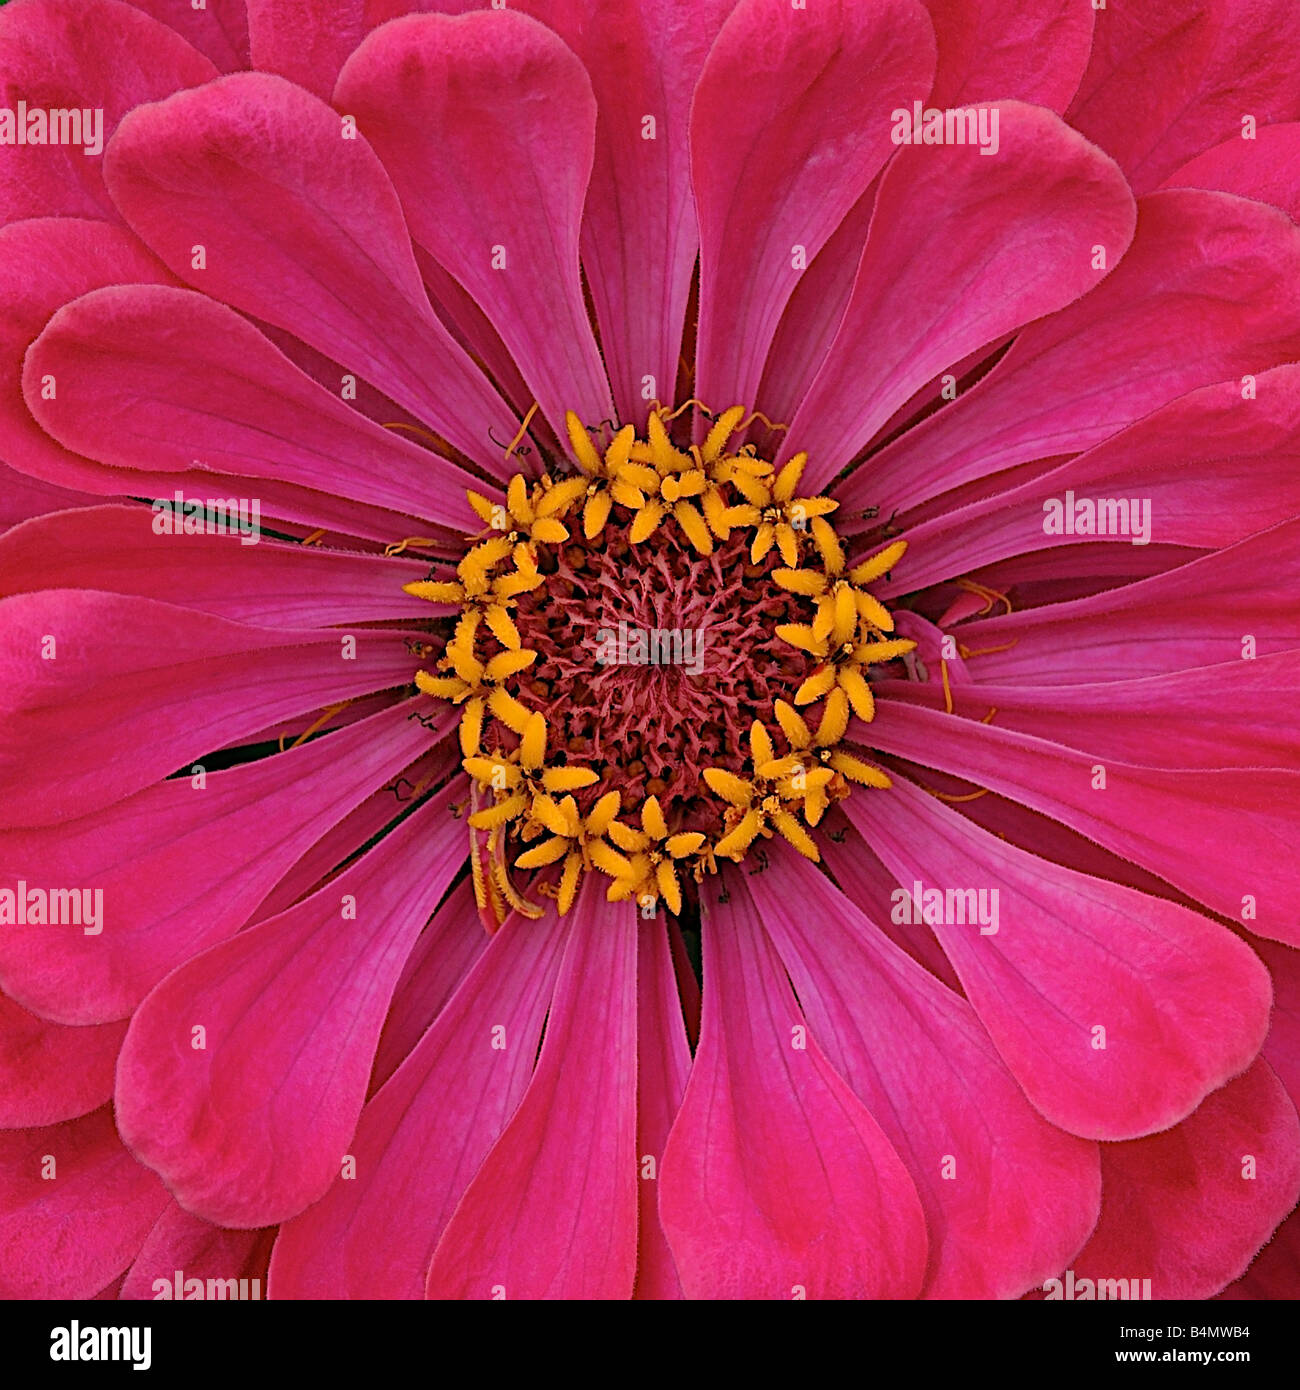 Bright pink flower with yellow centre stock photos bright pink centre of a pink zinnia in full bloom stock image mightylinksfo